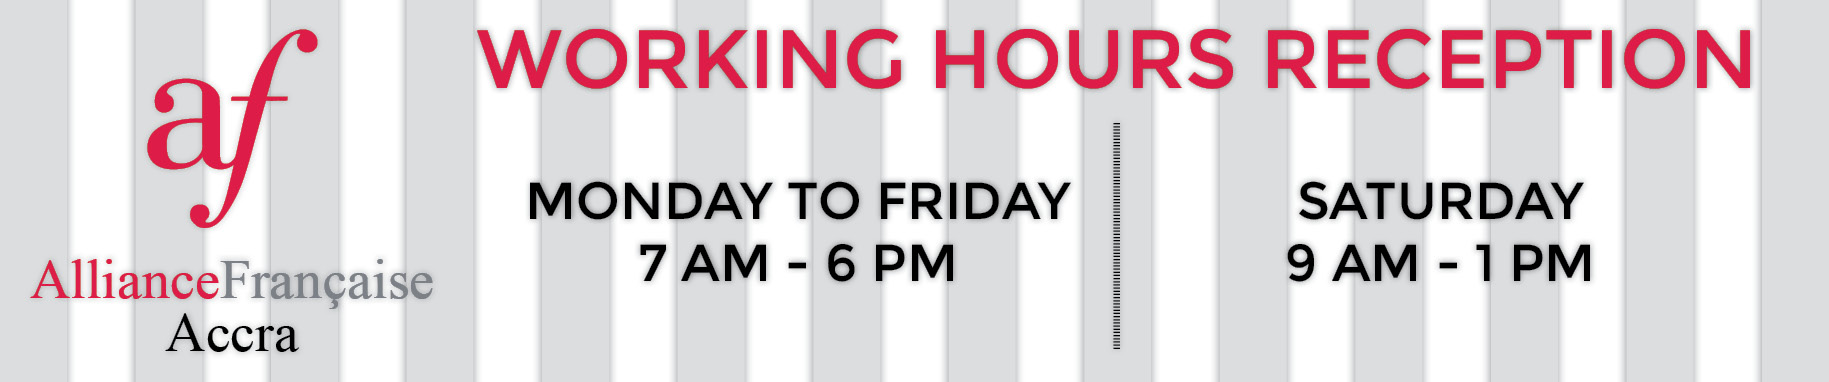 WORKING-HOURS-RECEPTION